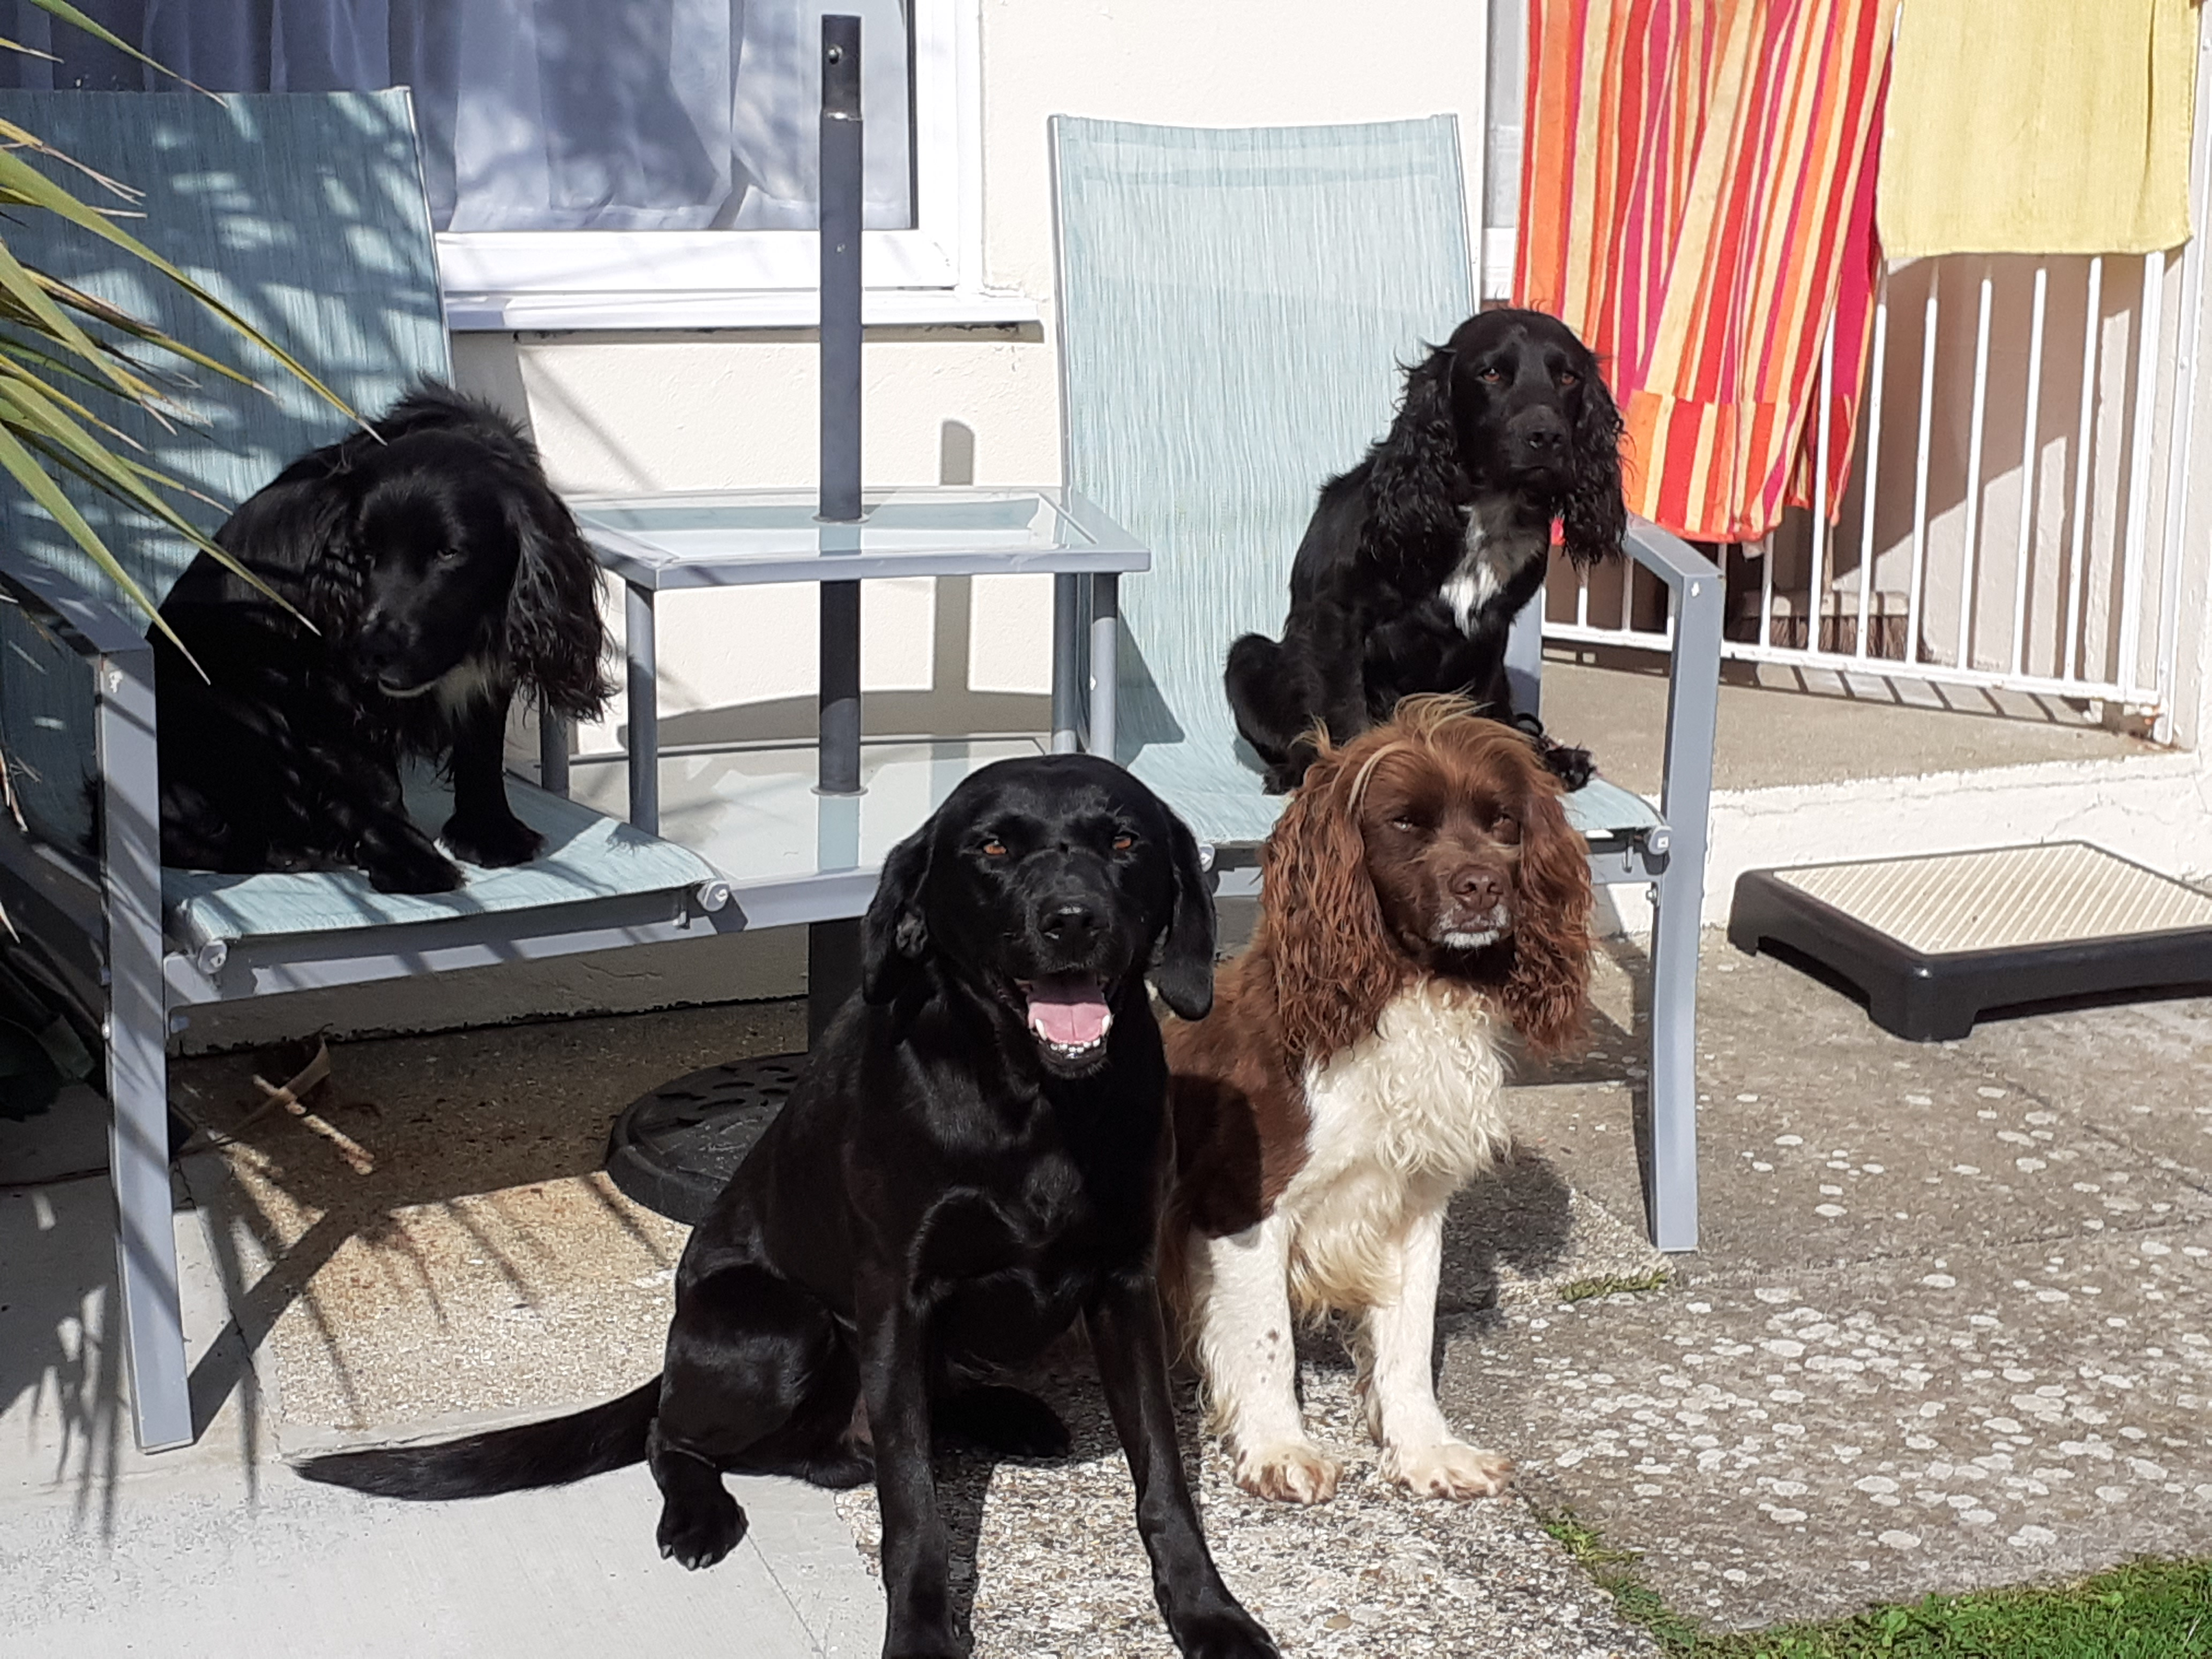 Dog Friendly Staycation Photo Competition Winners!